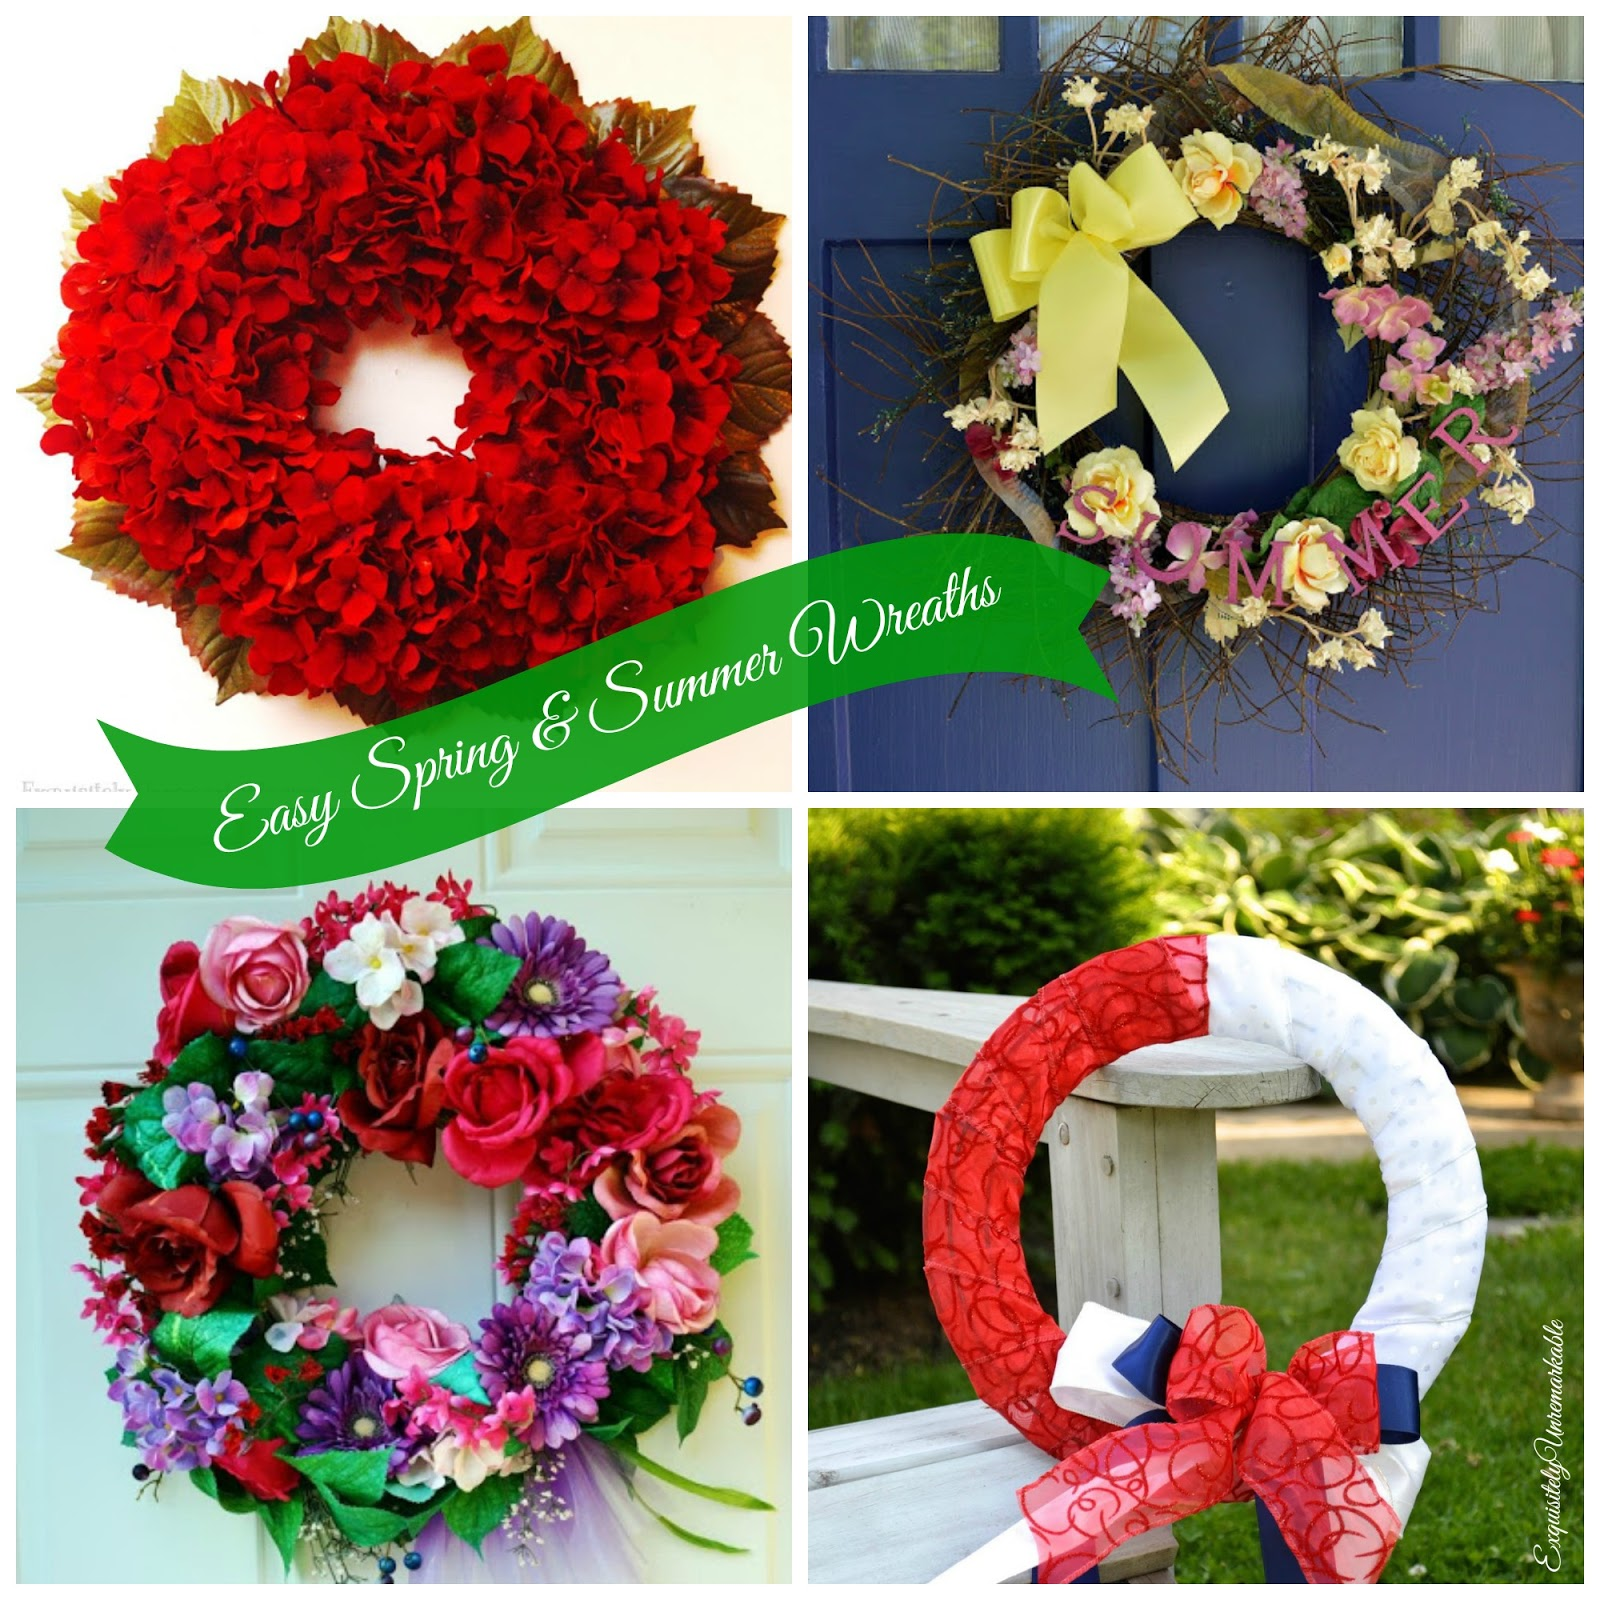 http://www.exquisitelyunremarkable.com/2015/05/easy-spring-and-summer-wreaths.html